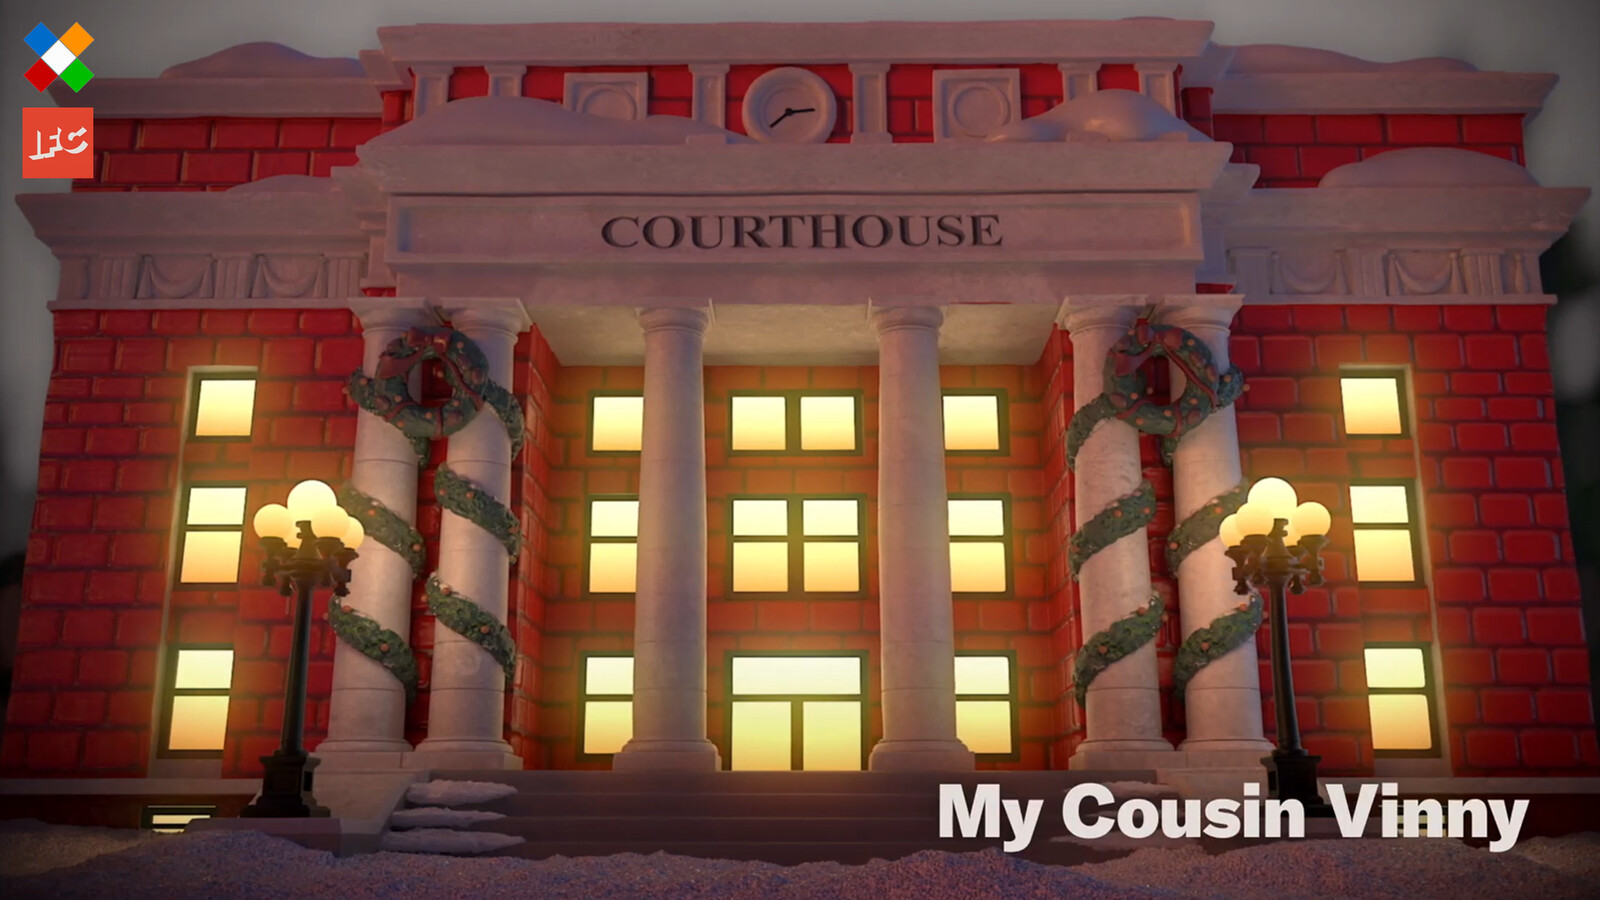 Courthouse final look in the spot. Responsible for Courthouse model and textures, minus the wreaths around it.